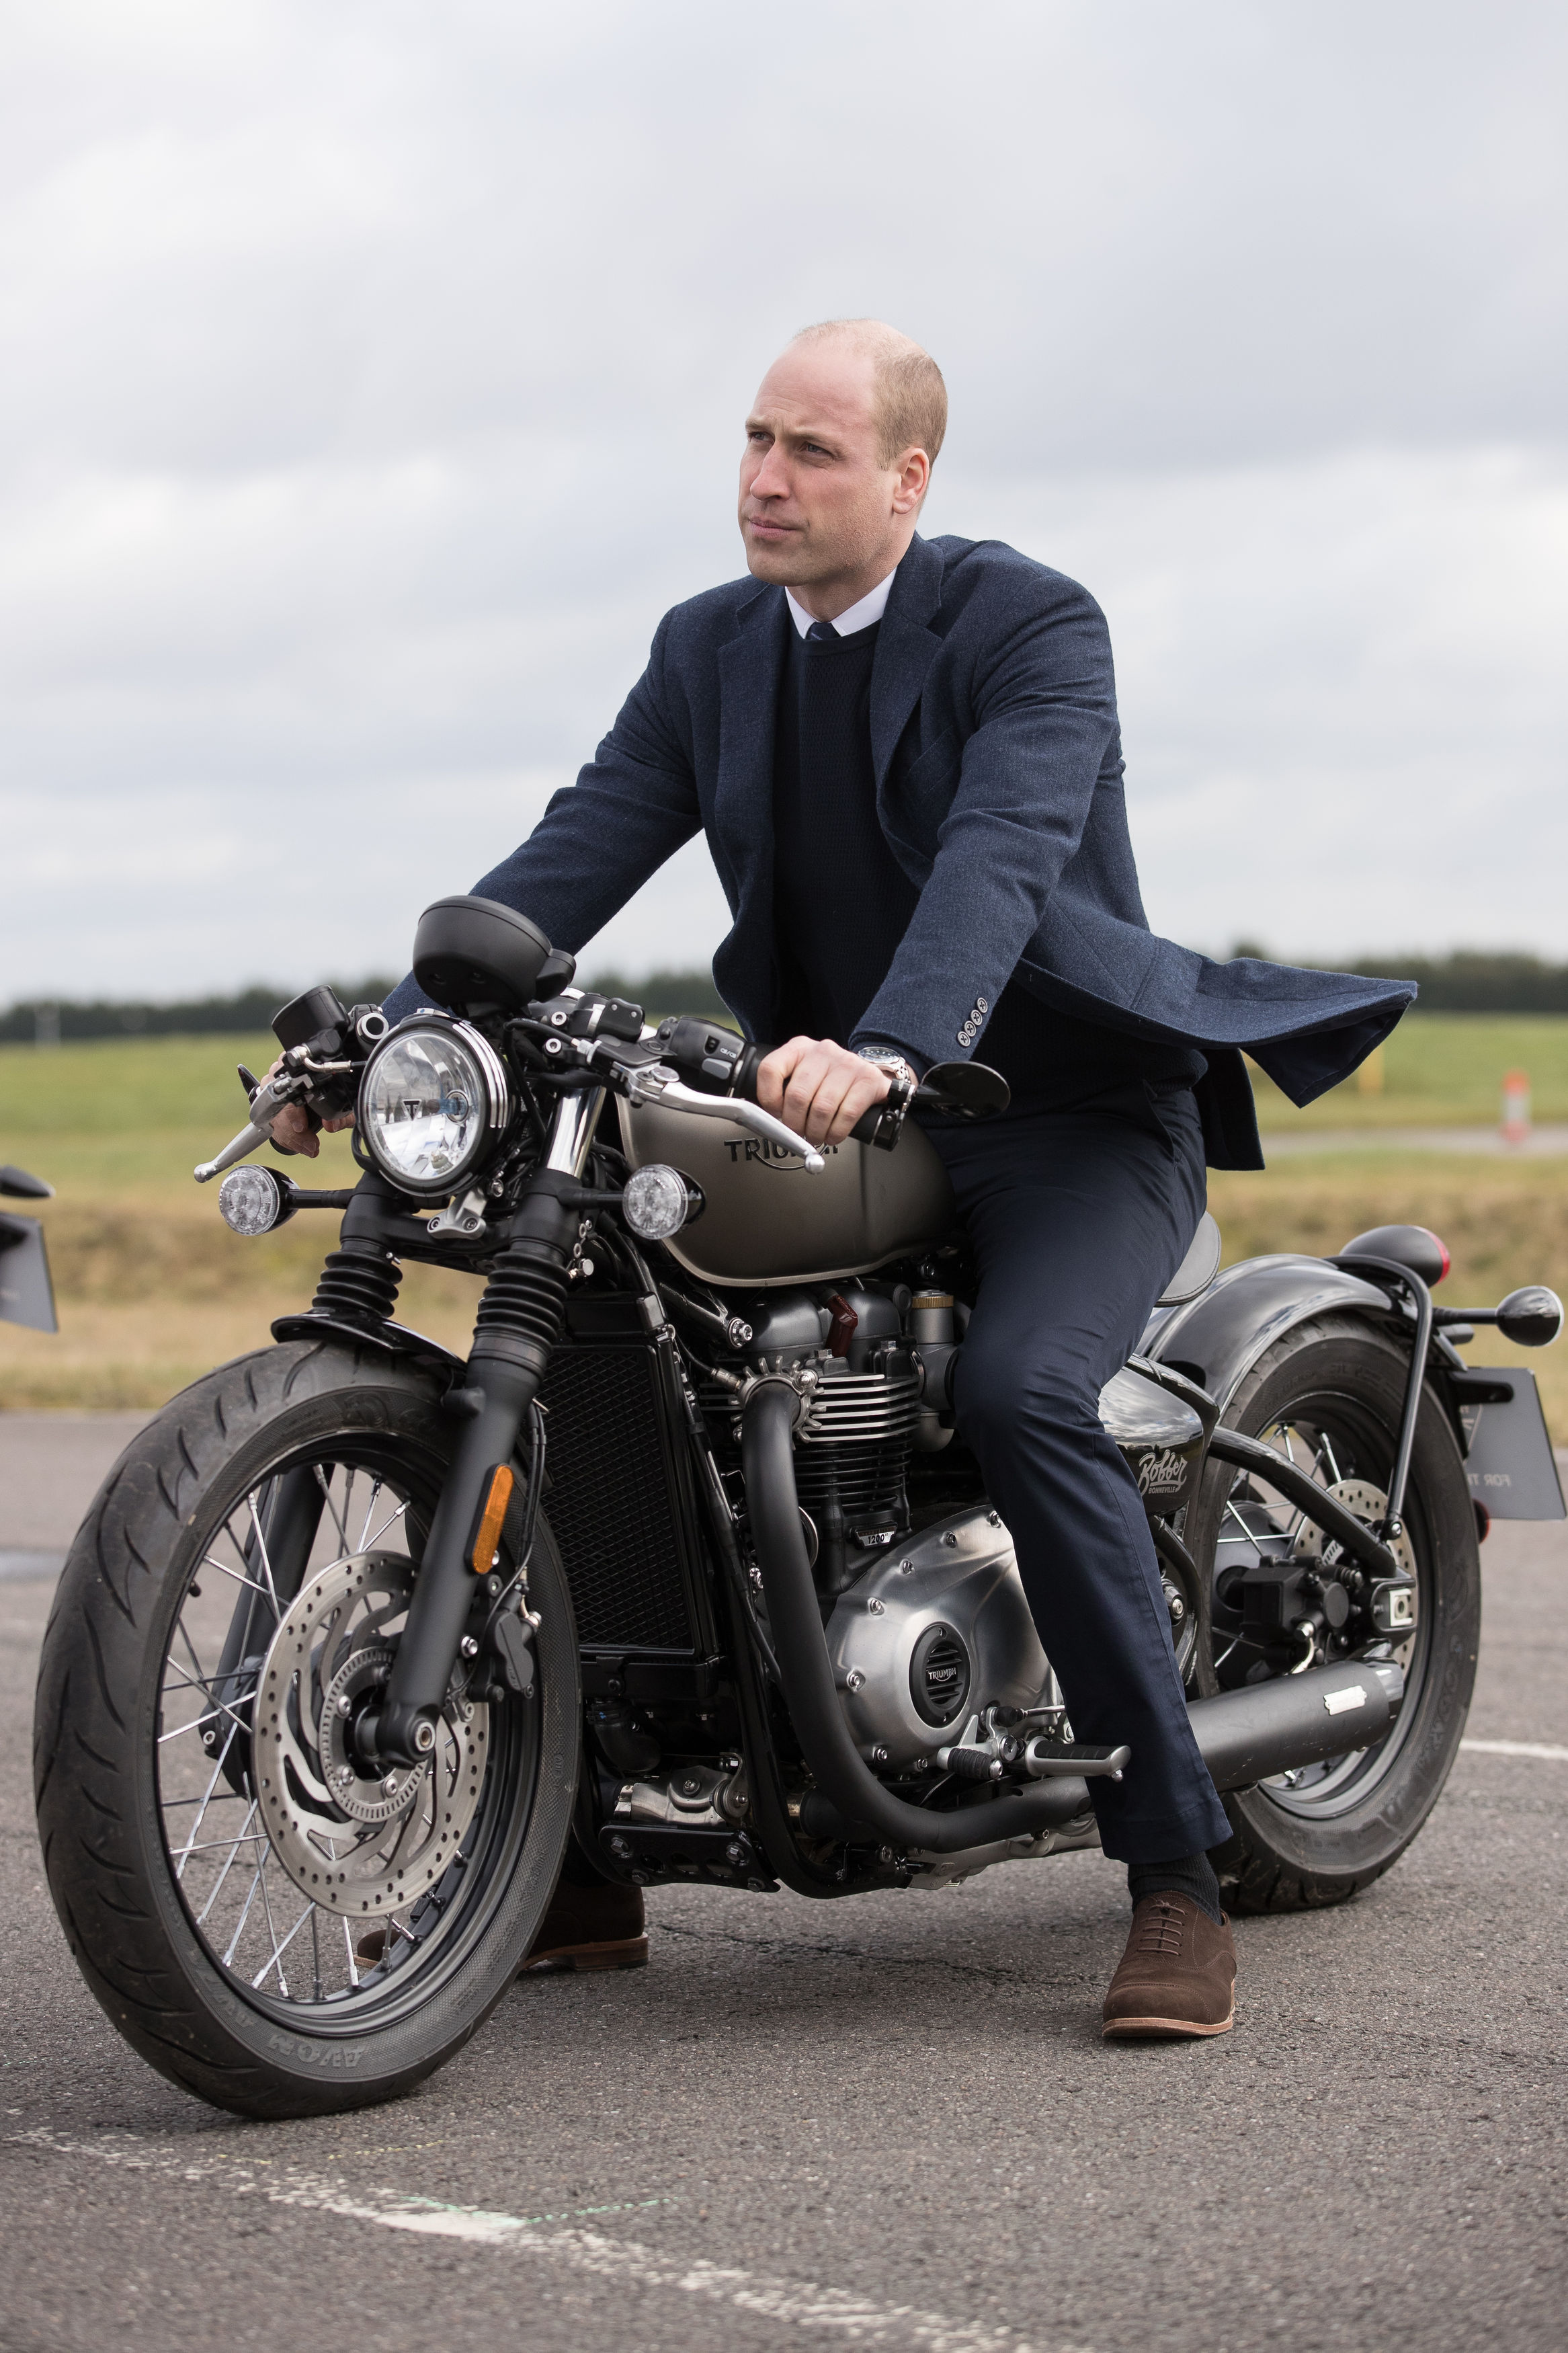 Prince William visits Triumph Motorcycles